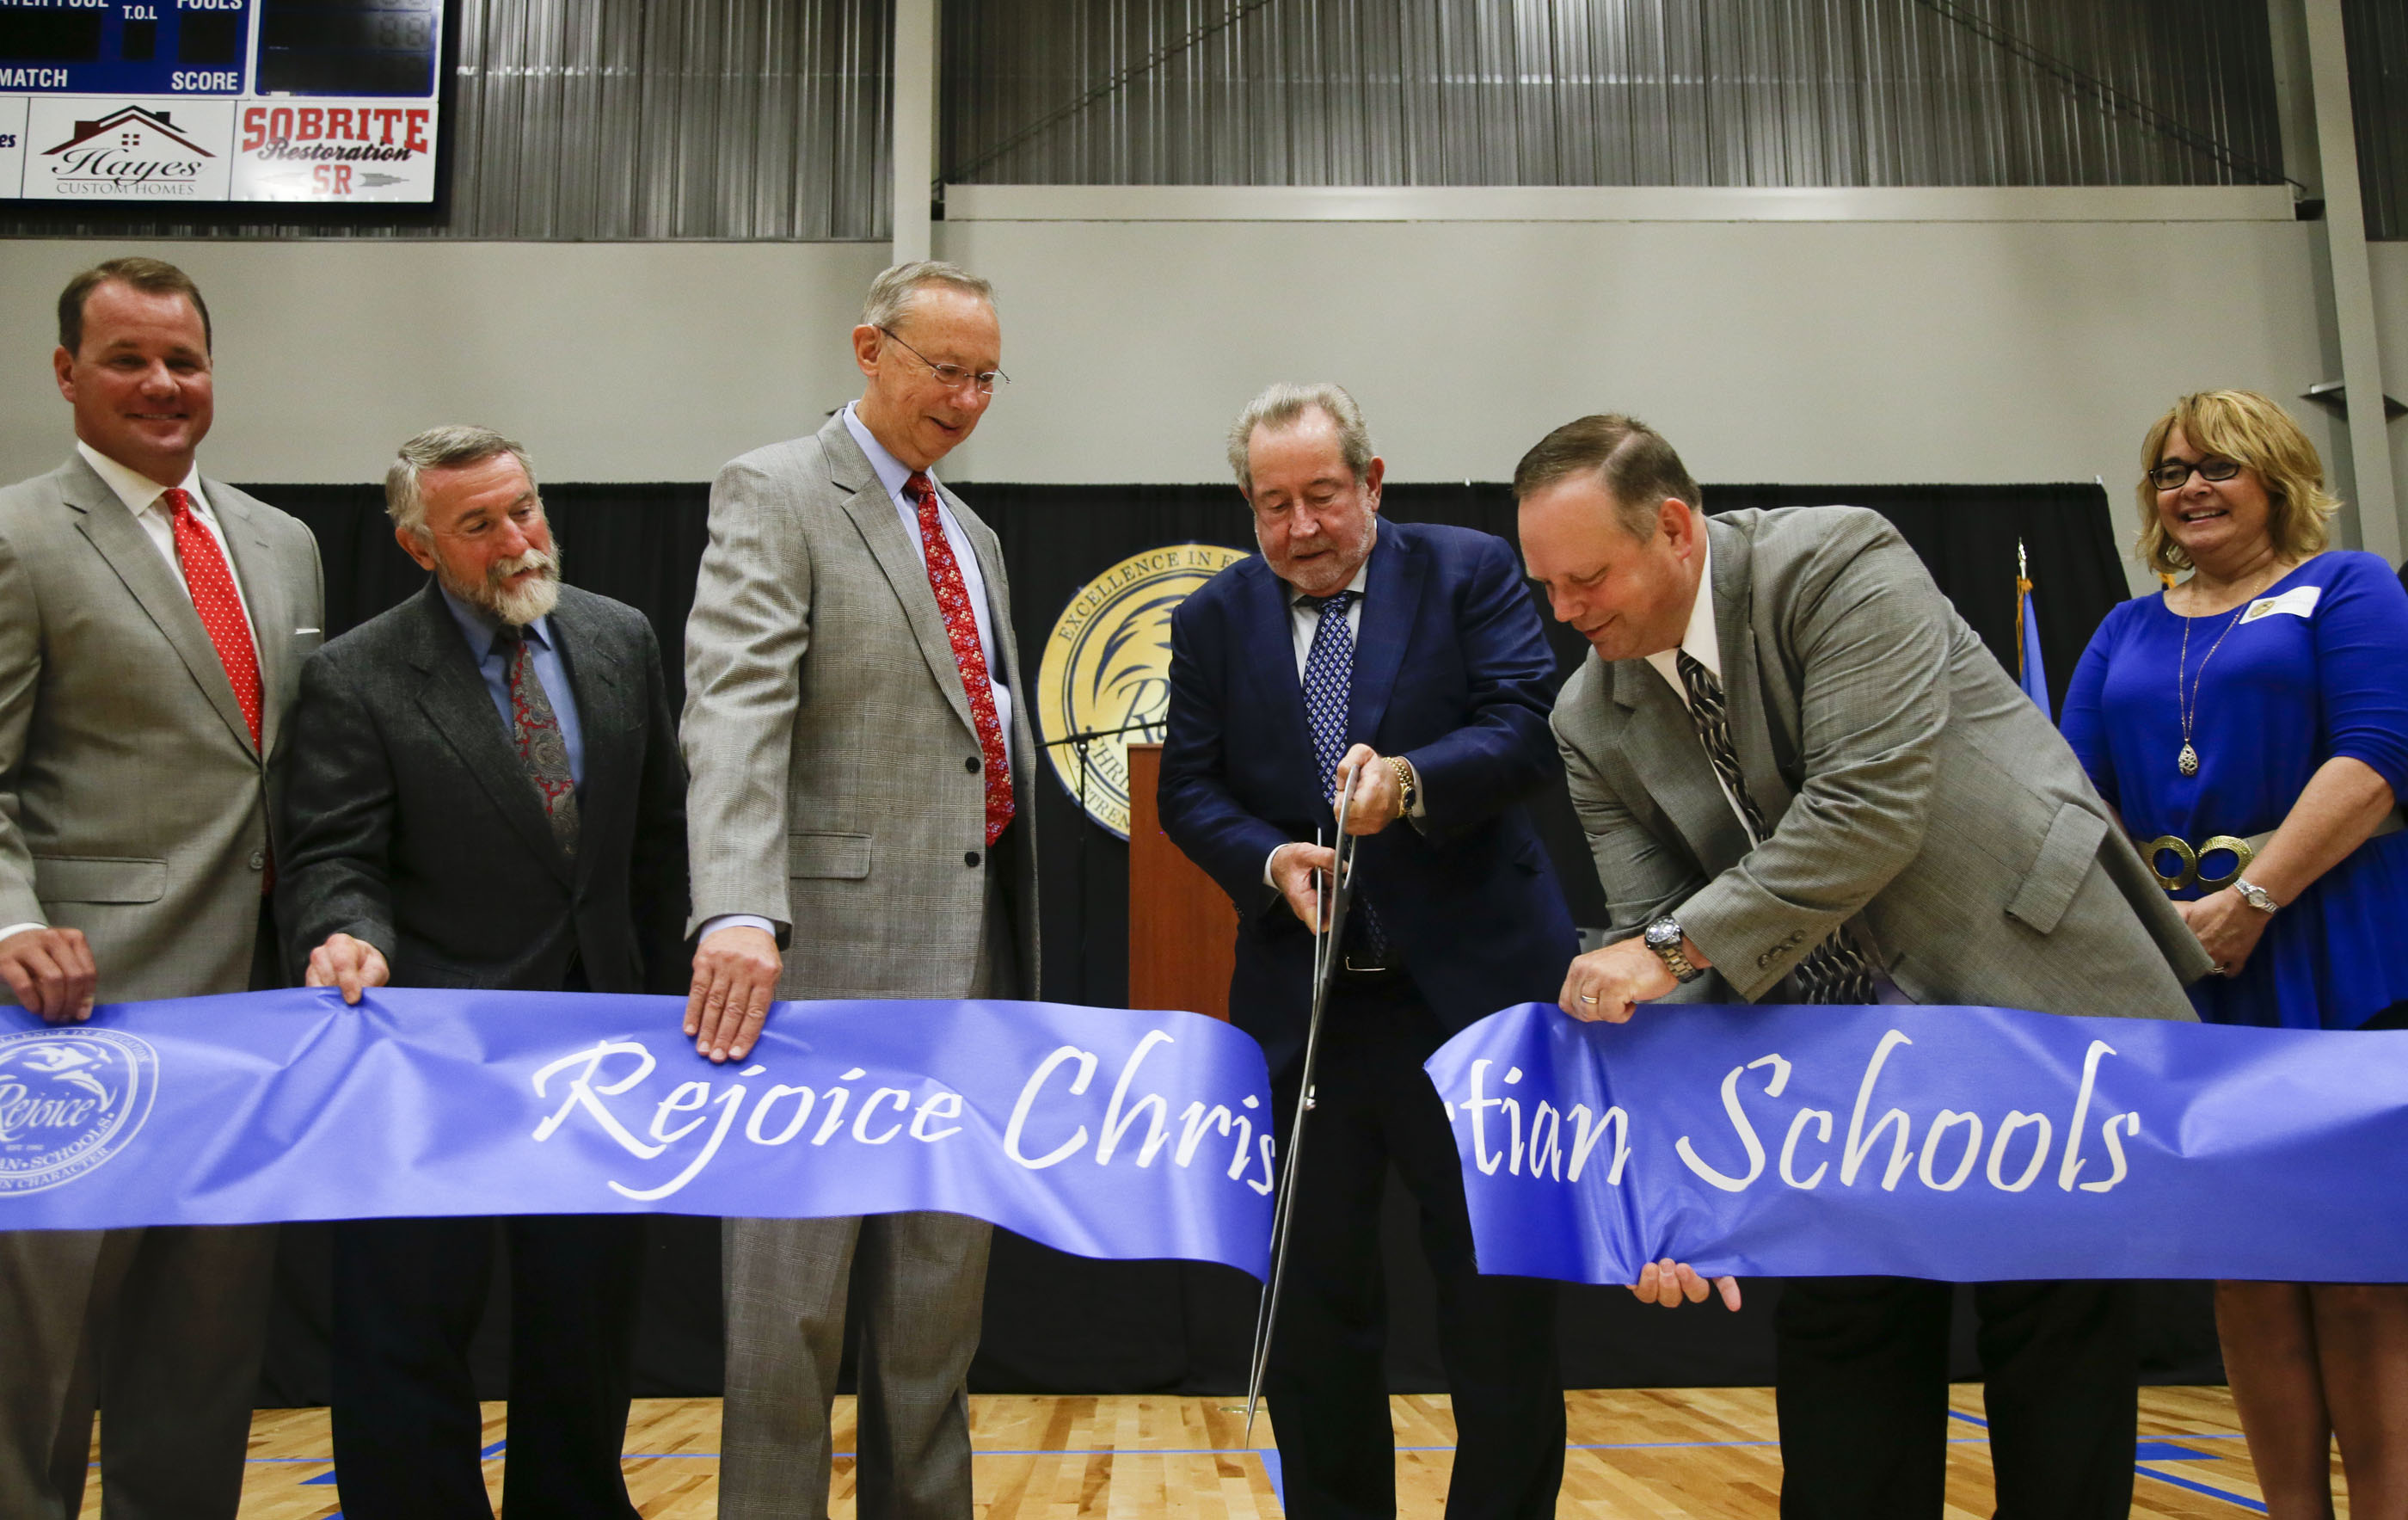 Photo Gallery: Rejoice Christian Schools Dedication Ceremony: www.tulsaworld.com/photovideo/slideshows/photo-gallery-rejoice...